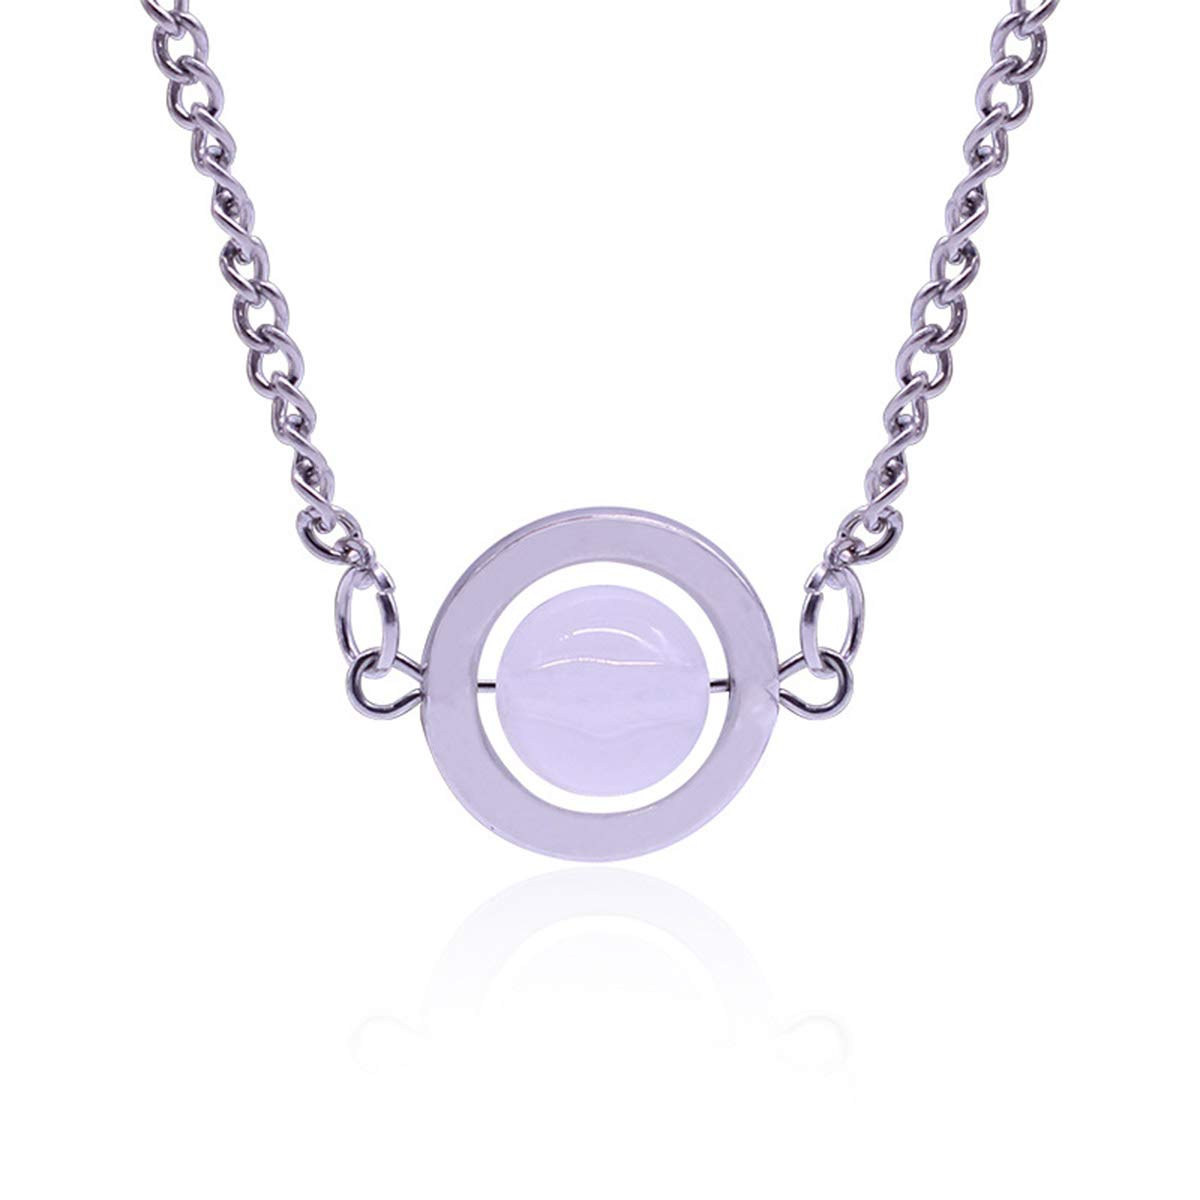 Onlyfo Moonstone Twilight Bella Circle Pendant Necklace with Jewelry Box,Twilight Necklace for Women White